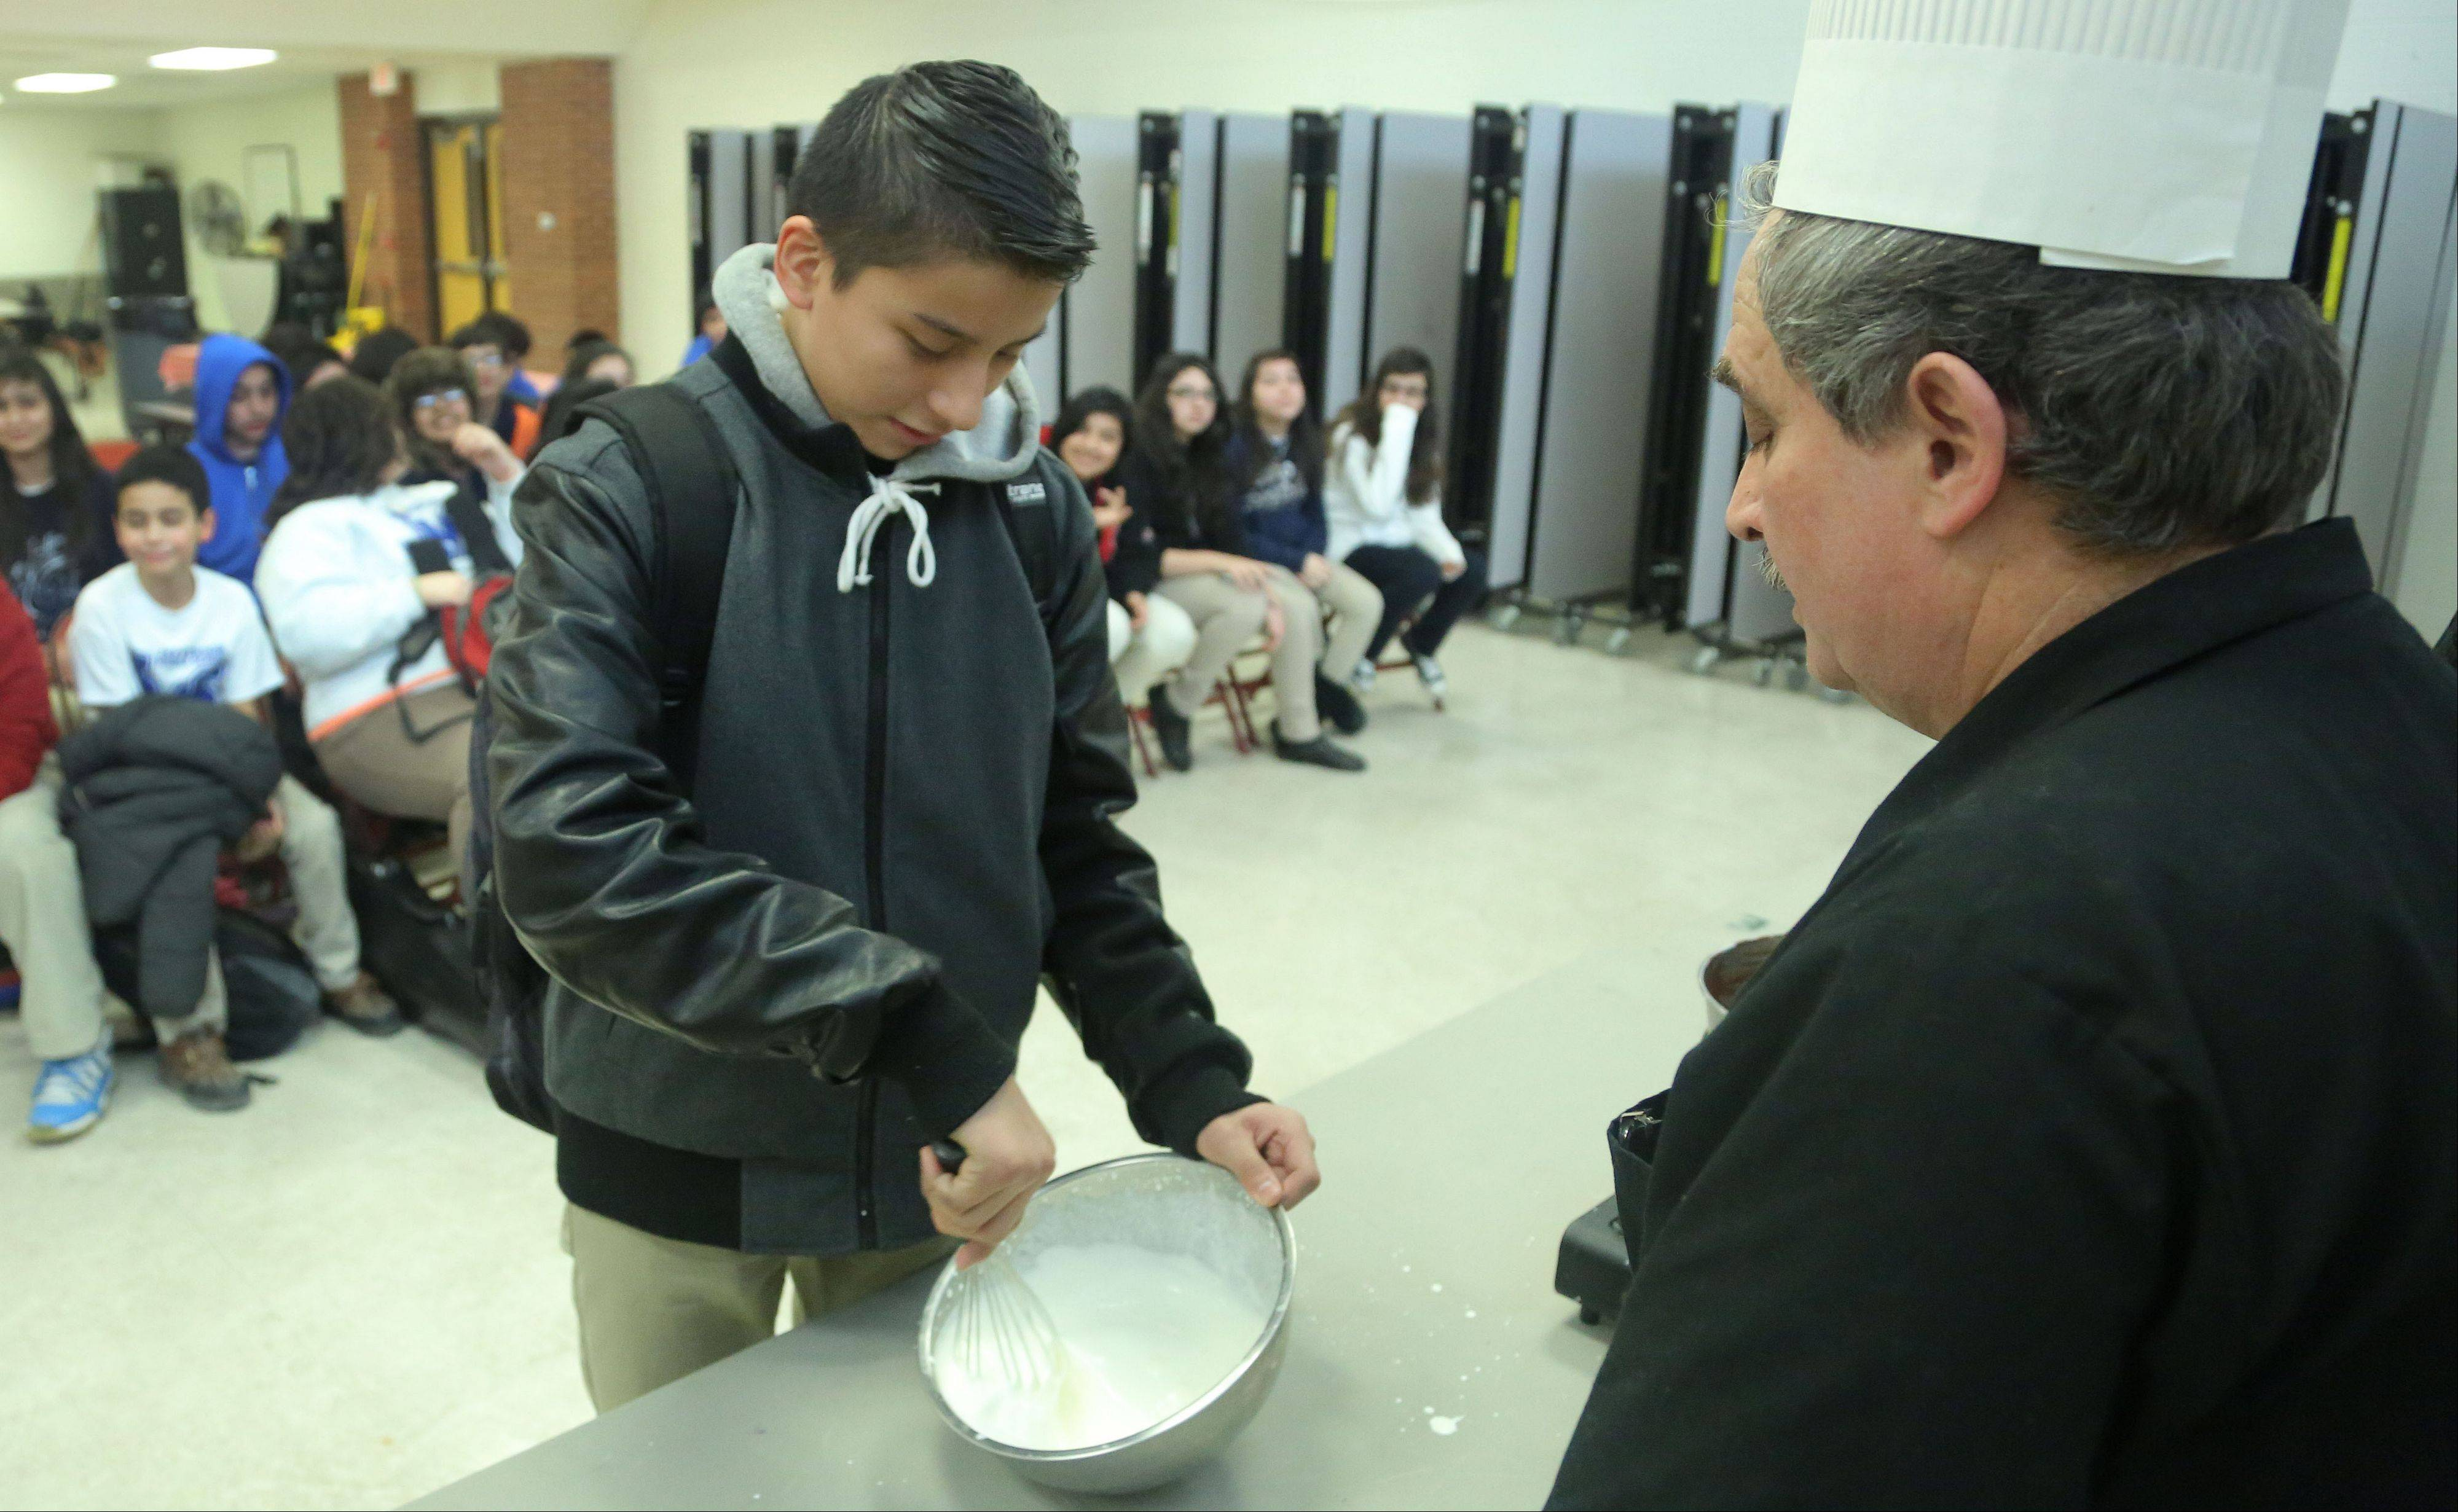 Seventh-grader Andy Estrada, left, learns how to whip cream as Claude Bouteille, owner/chef of Taste of Paris Restaurant in Mundelein, gave a French cooking demonstration Thursday for sixth-, seventh- and eighth-graders in Maureen Fischer Rivkin's French class at Thomas Jefferson School in Waukegan.